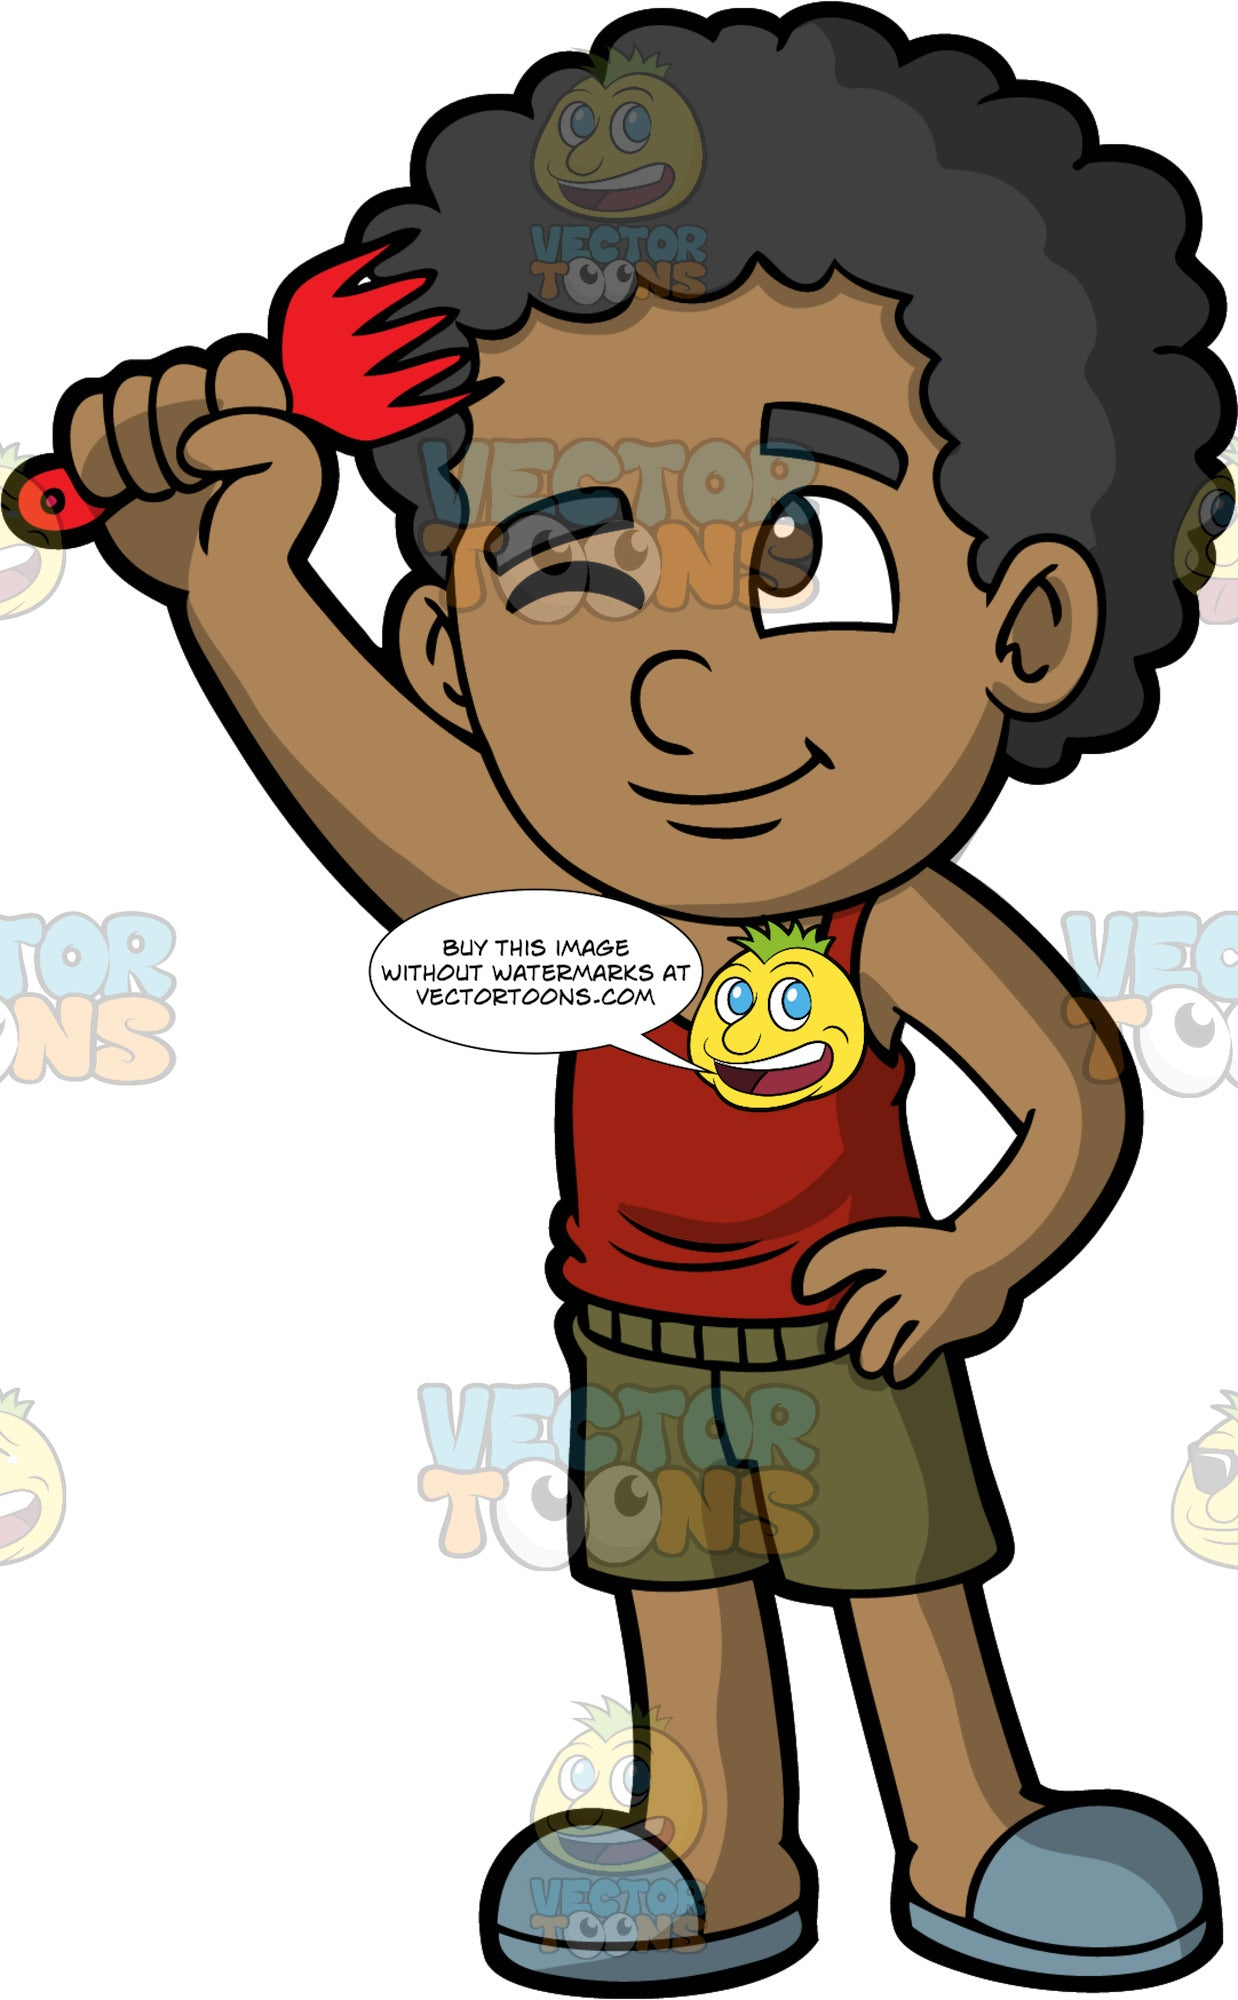 A black boy combing his hair with an afro pick. A black boy wearing green shorts, a red shirt, and gray slip on shoes, uses a red afro pick to comb his hair